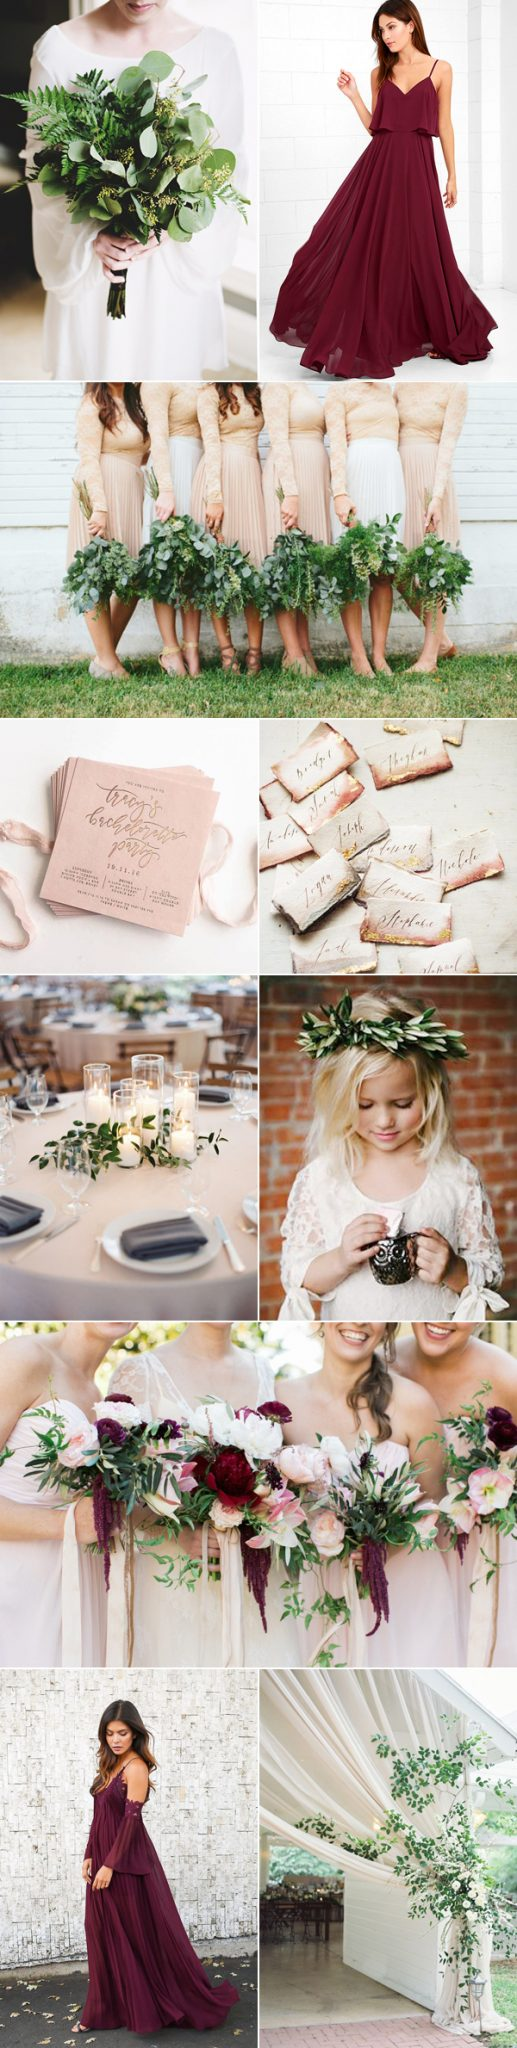 Fall Brunch Wedding Ideas | Encore wedding ideas from @cydconverse